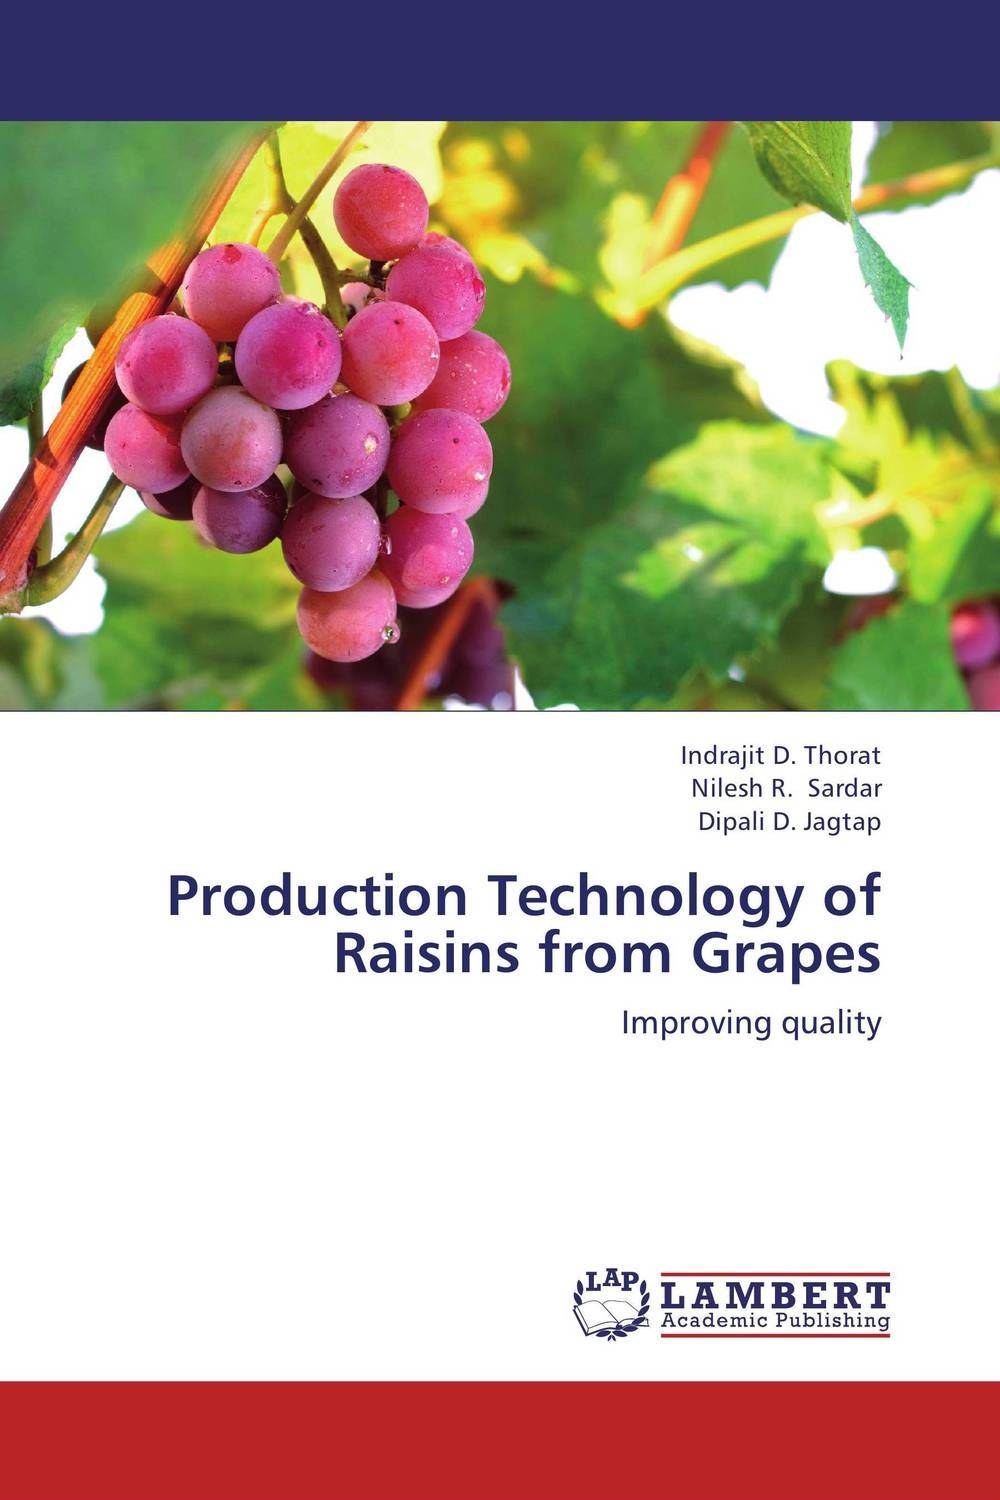 Production Technology of Raisins from Grapes adding value to the citrus pulp by enzyme biotechnology production